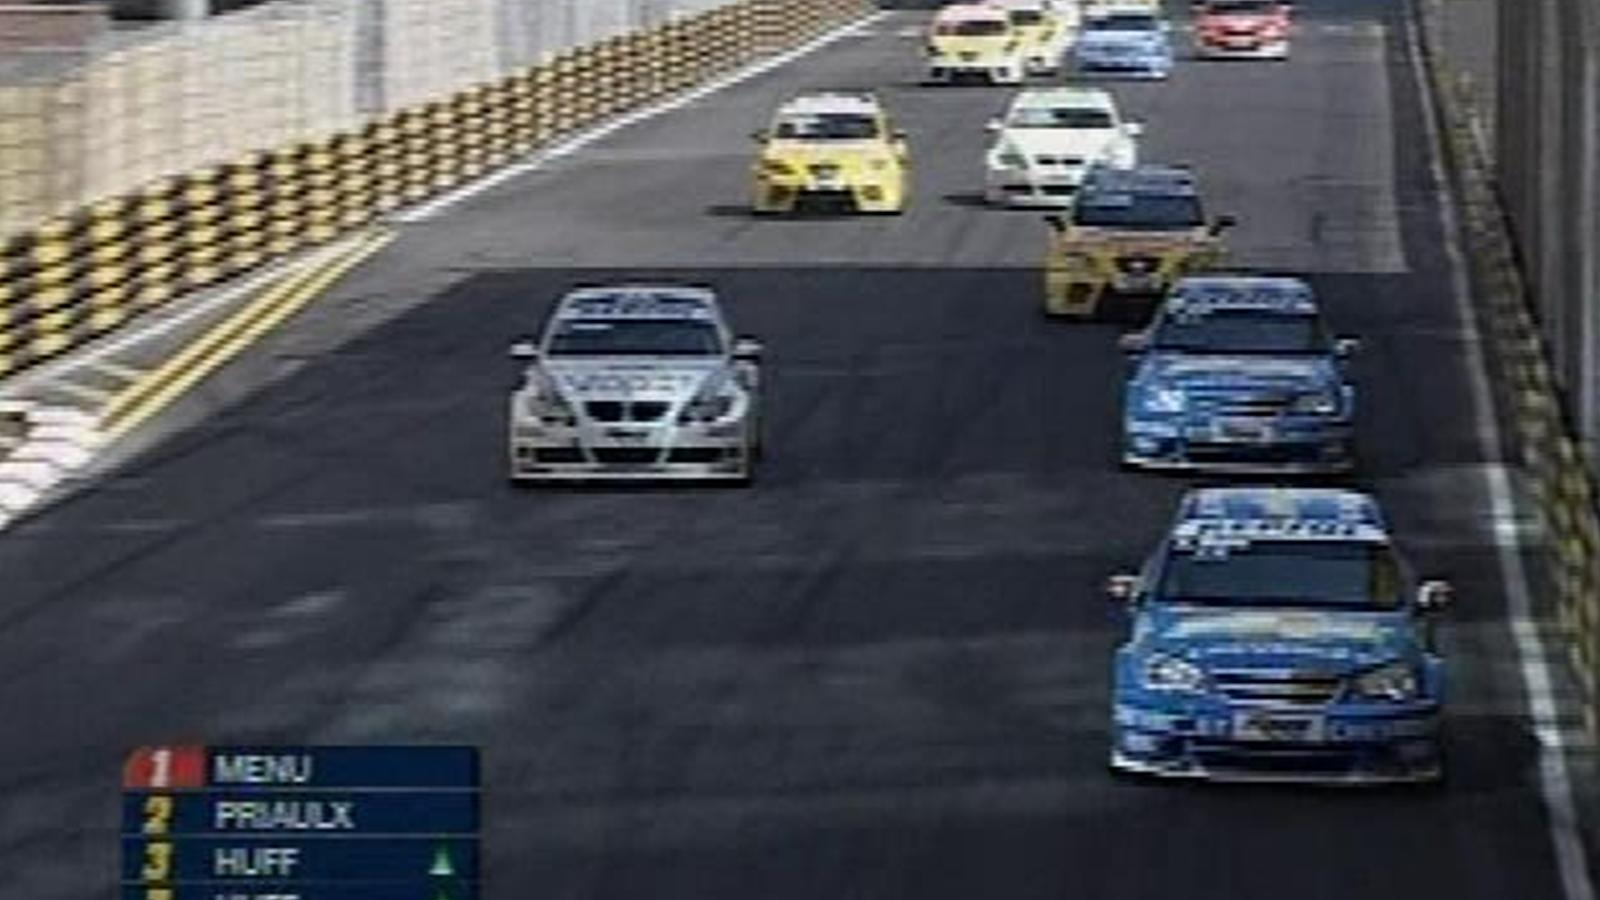 df7d4c9bc75a8 VIDEO - FIA WTCC  Macao - Macao - Video Eurosport